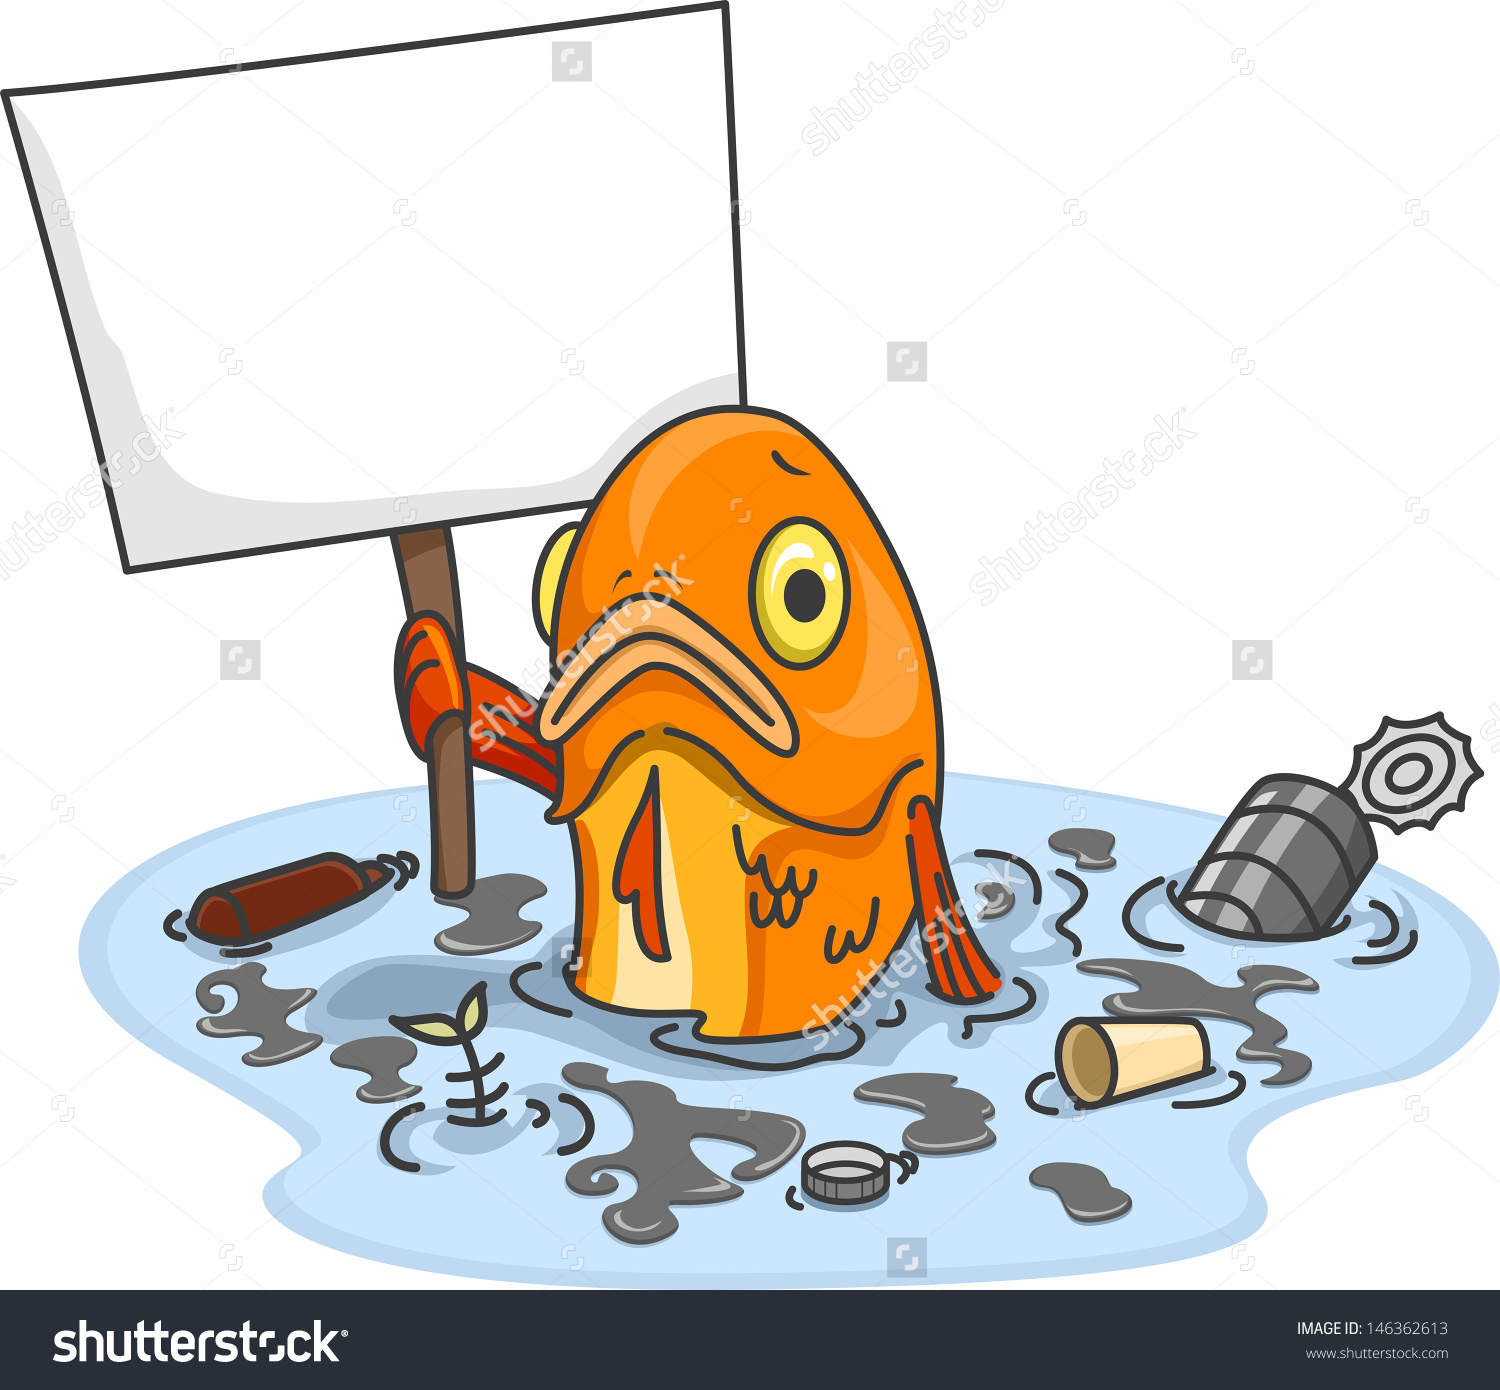 Solutions Water Pollution Clip Art